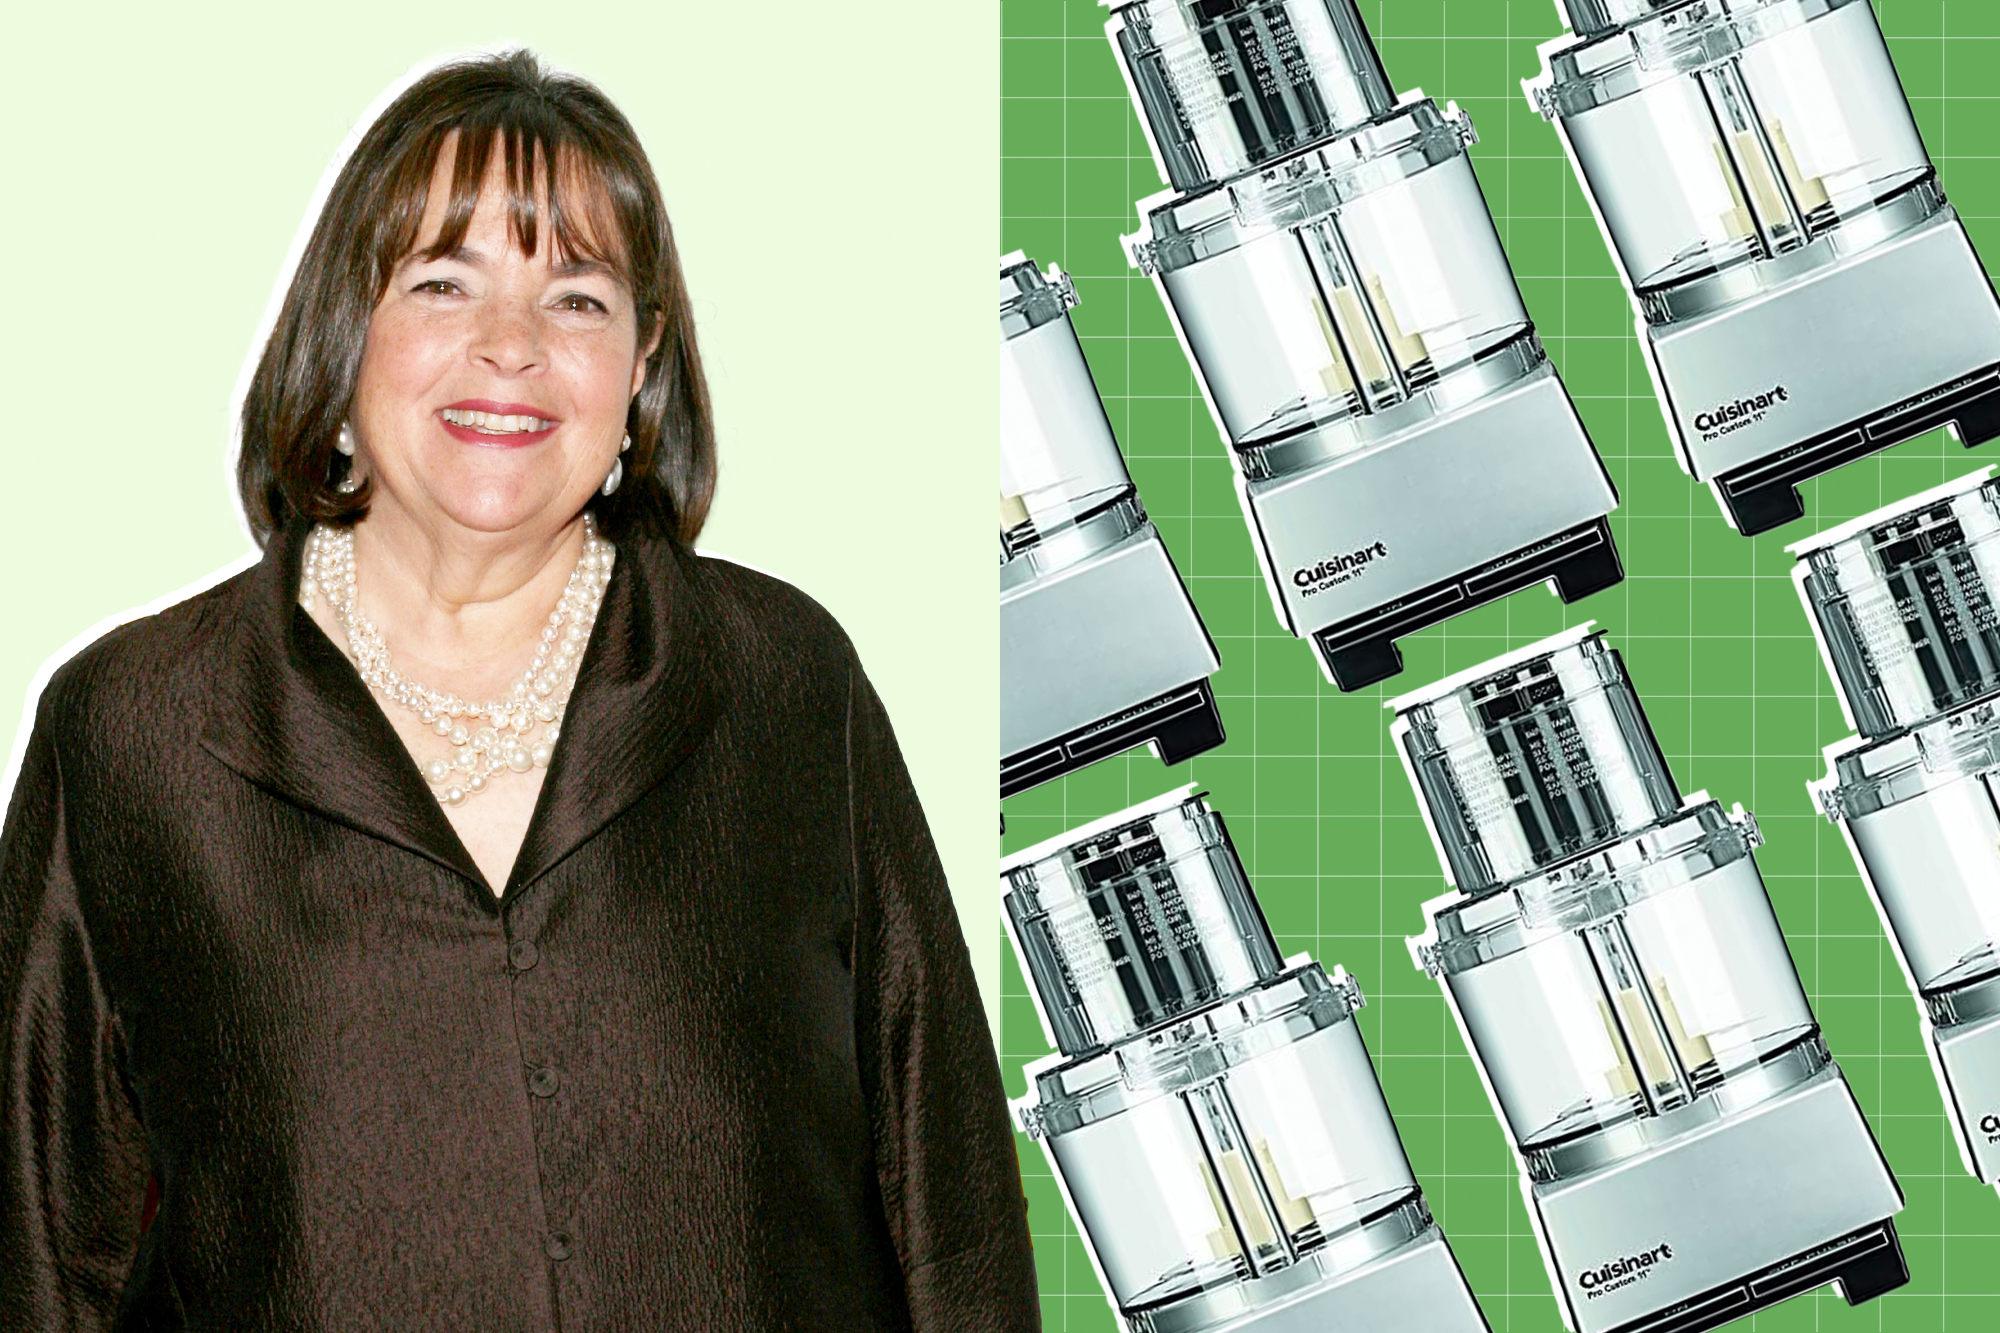 Ina Garten and Cuisinart DLC-8SBCY Pro Custom 11-Cup Food Processor on a designed background